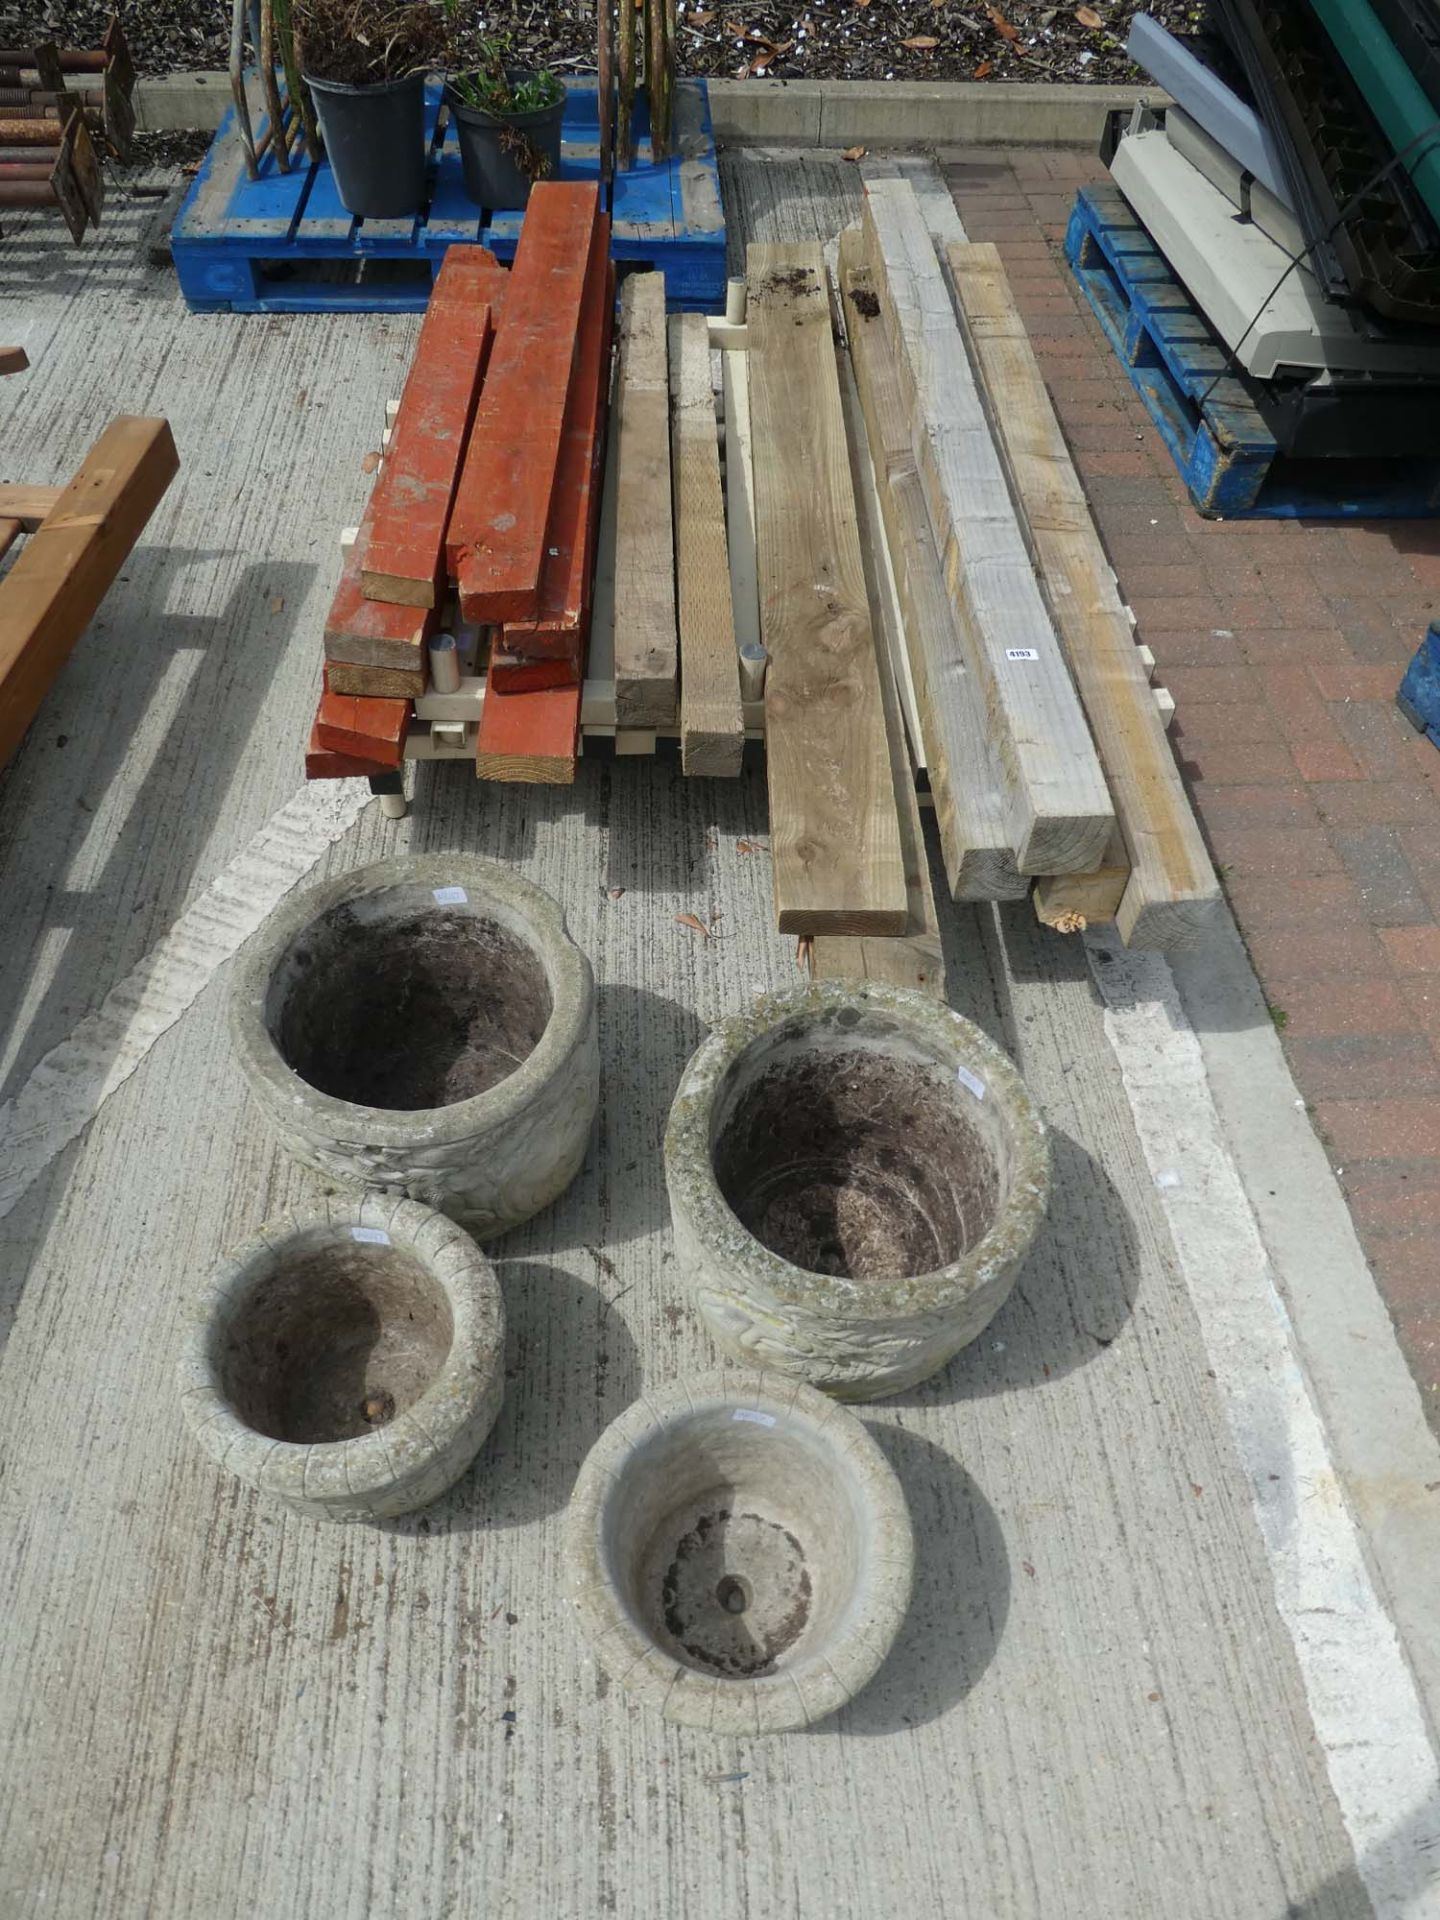 Quantity of plastic stands and assorted pieces of timber